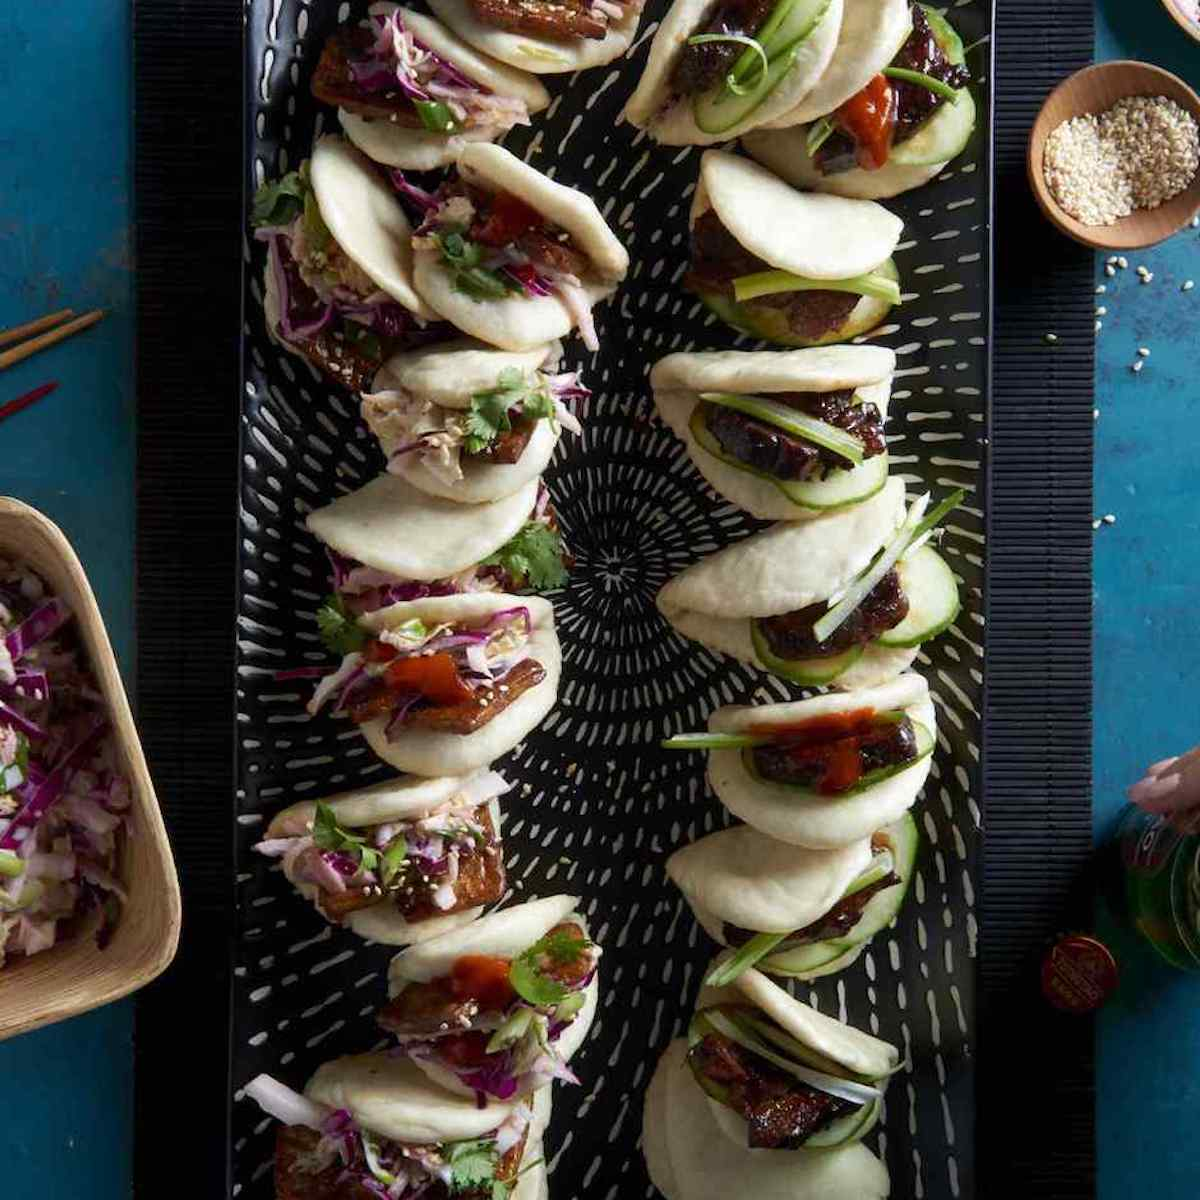 Andrea's Steamed Buns